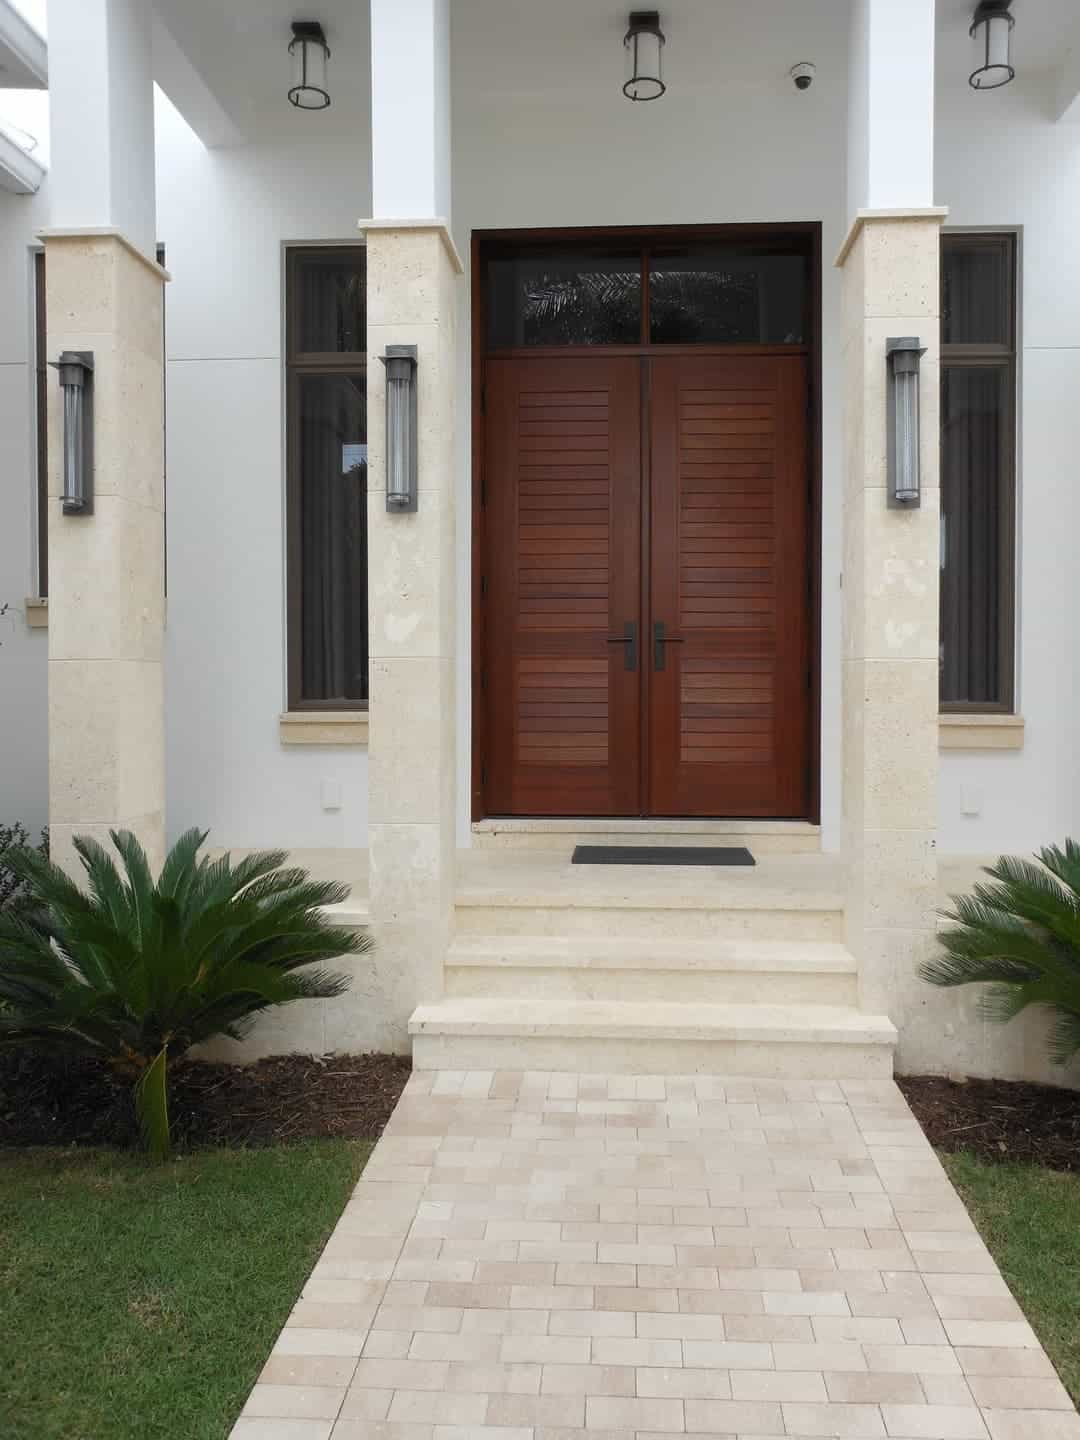 Calypso Coral, Standard Selection, Columns, Treads, Cladding